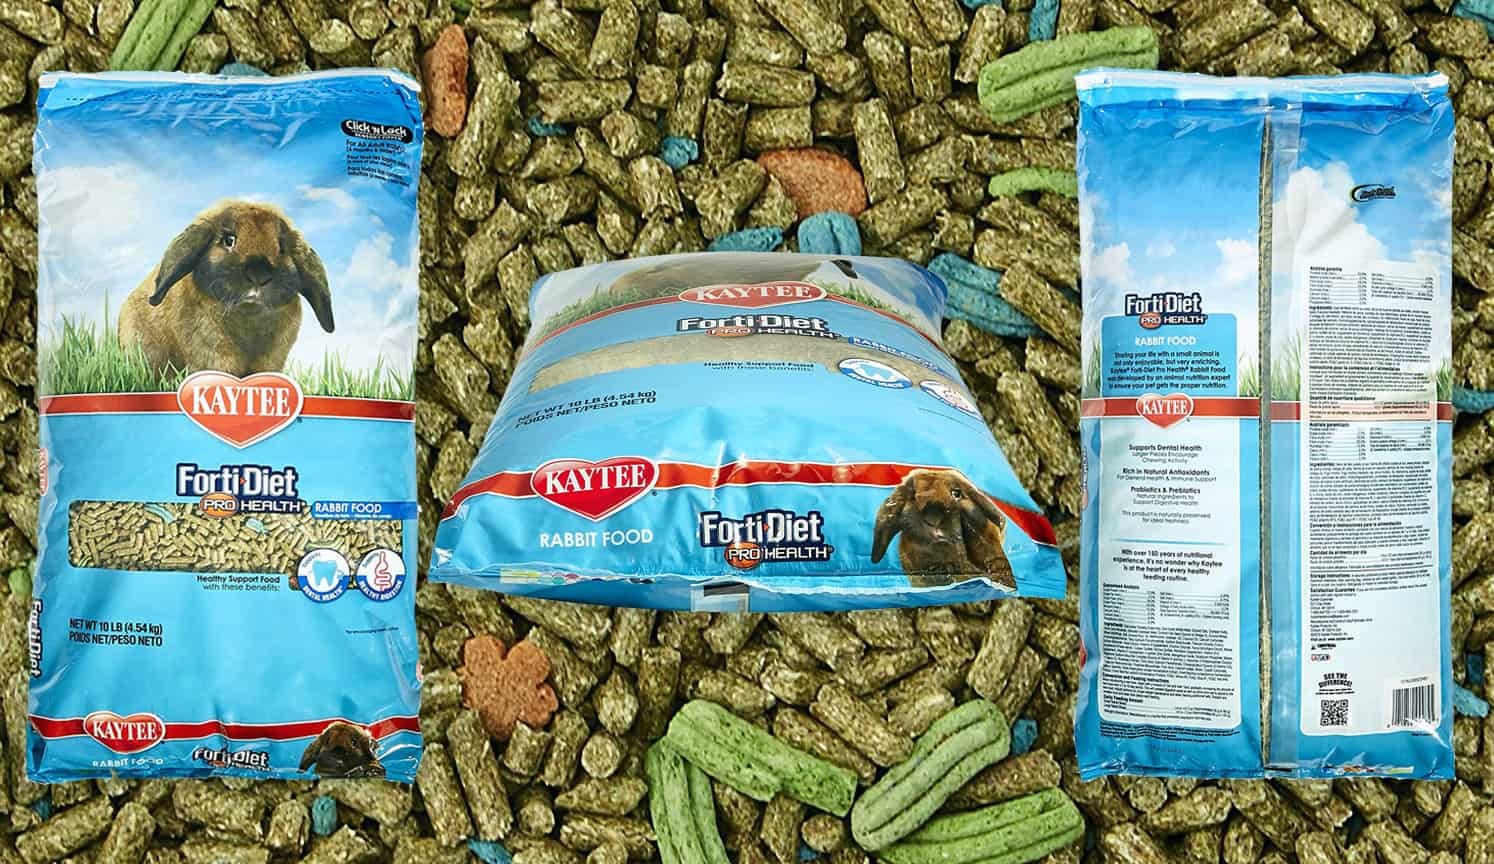 Natural Rabbit Food as the third related product of the Best Rabbit Food